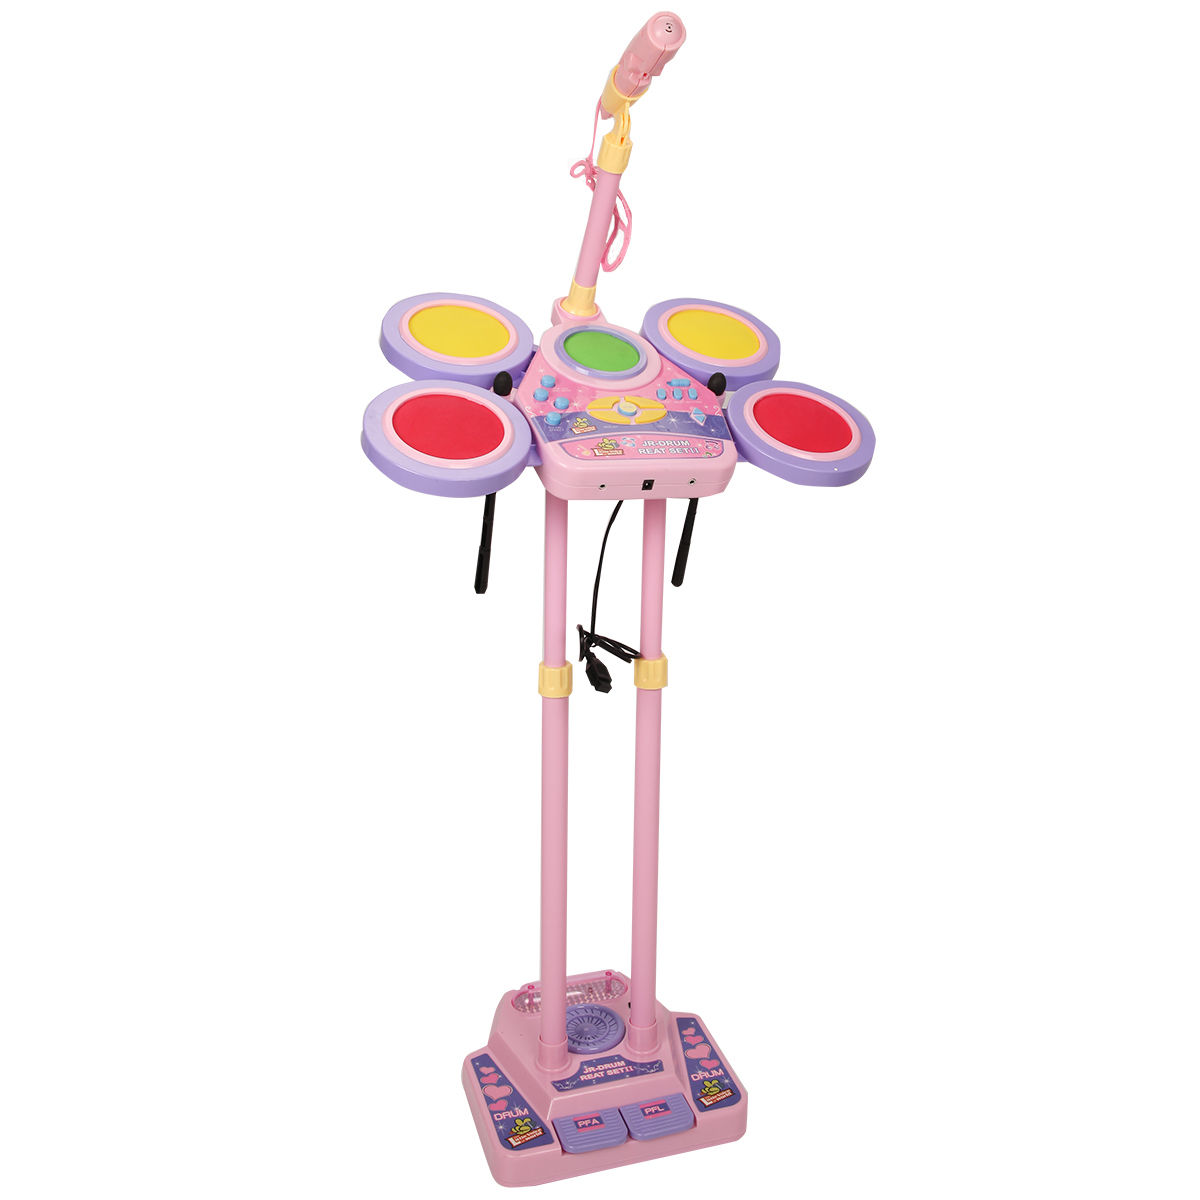 Costway Kids Electronic Drum Set MP3 Function w  Microphone & Height Adjustable Stand by Costway